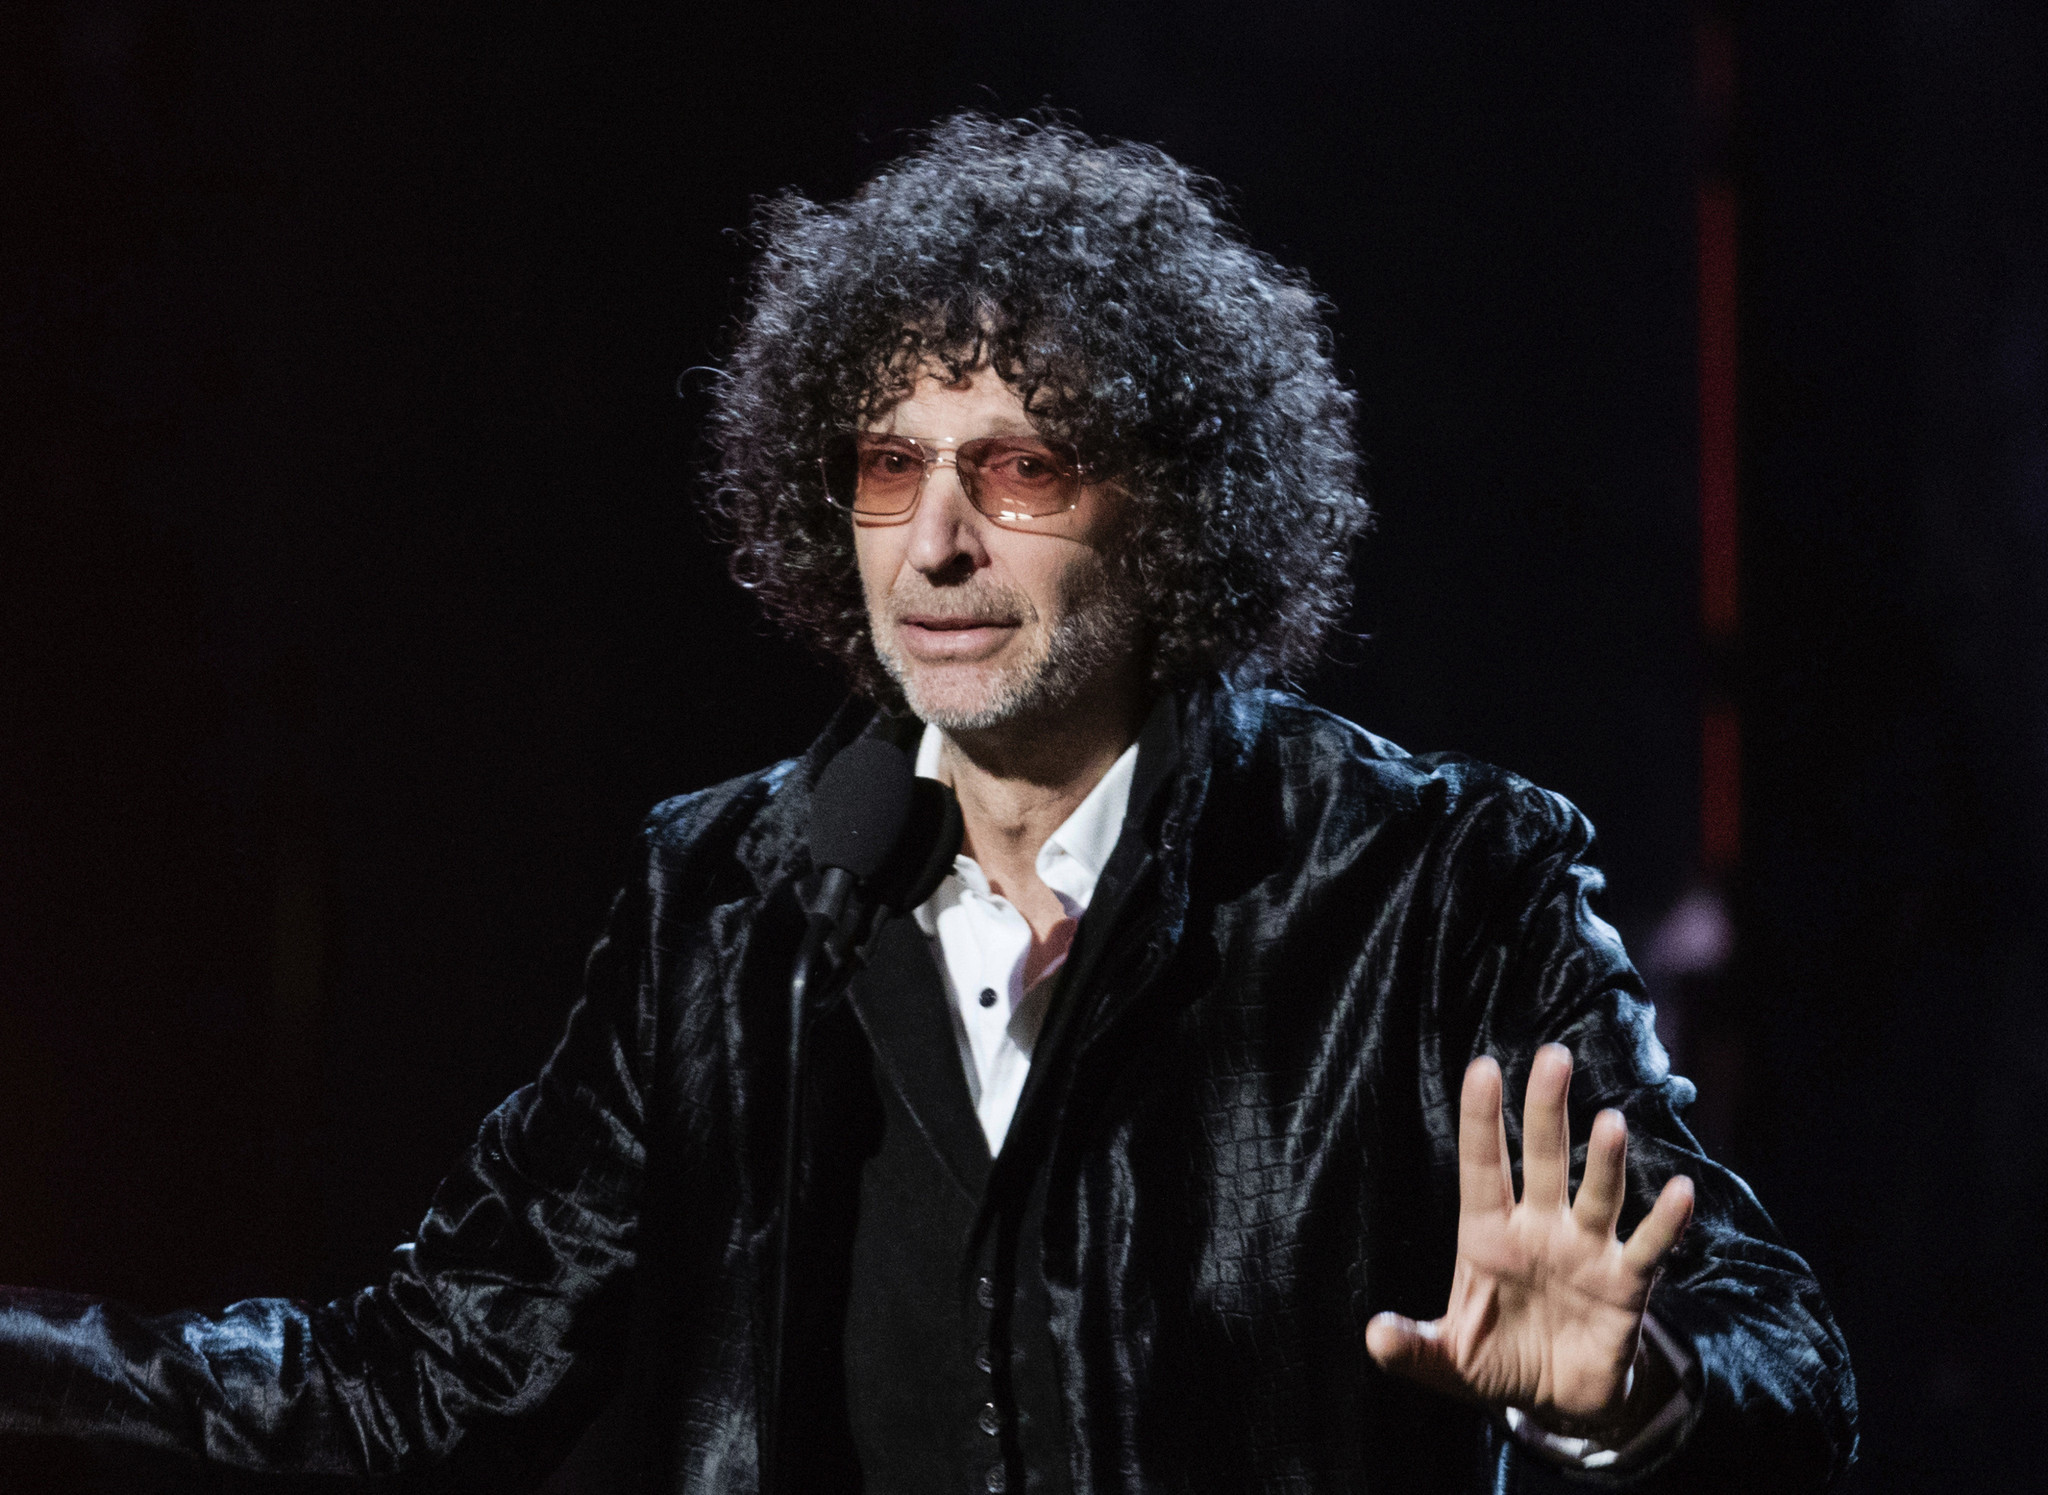 Howard Stern got a 97-cent check during these tough times and he's cashing it